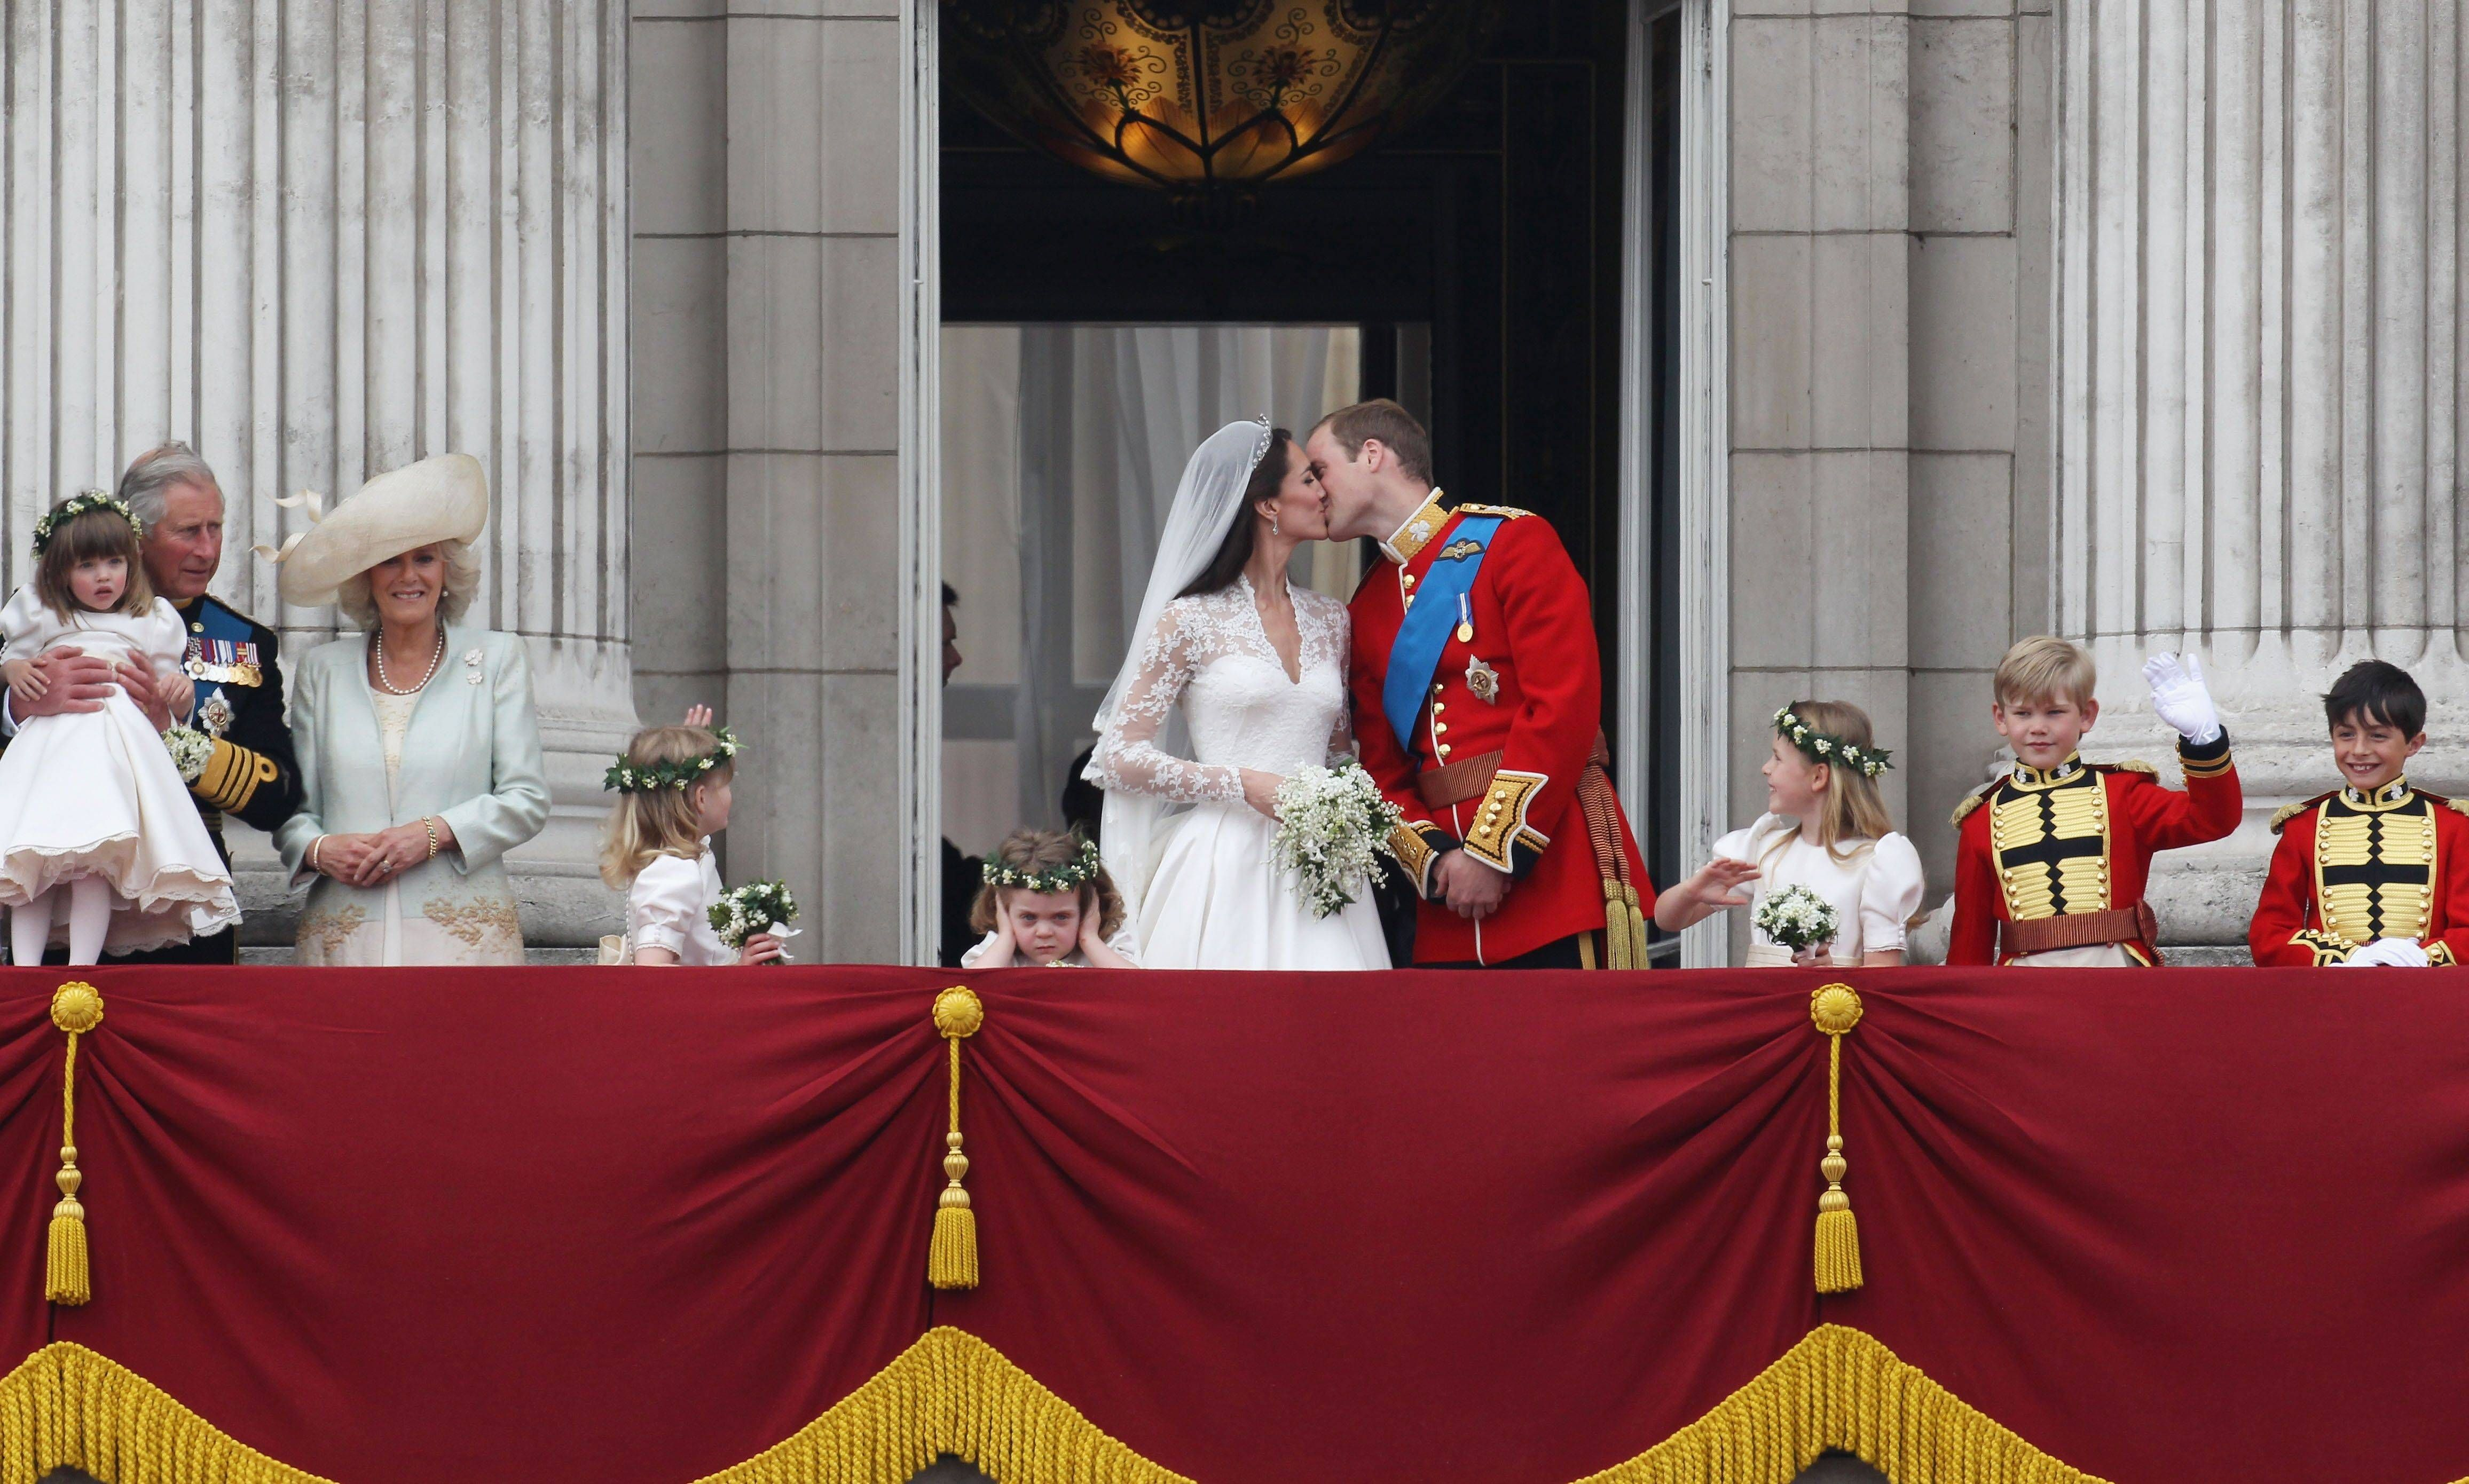 Royal Wedding - The Newlyweds Greet Wellwishers From The Buckingham Palace Balcony